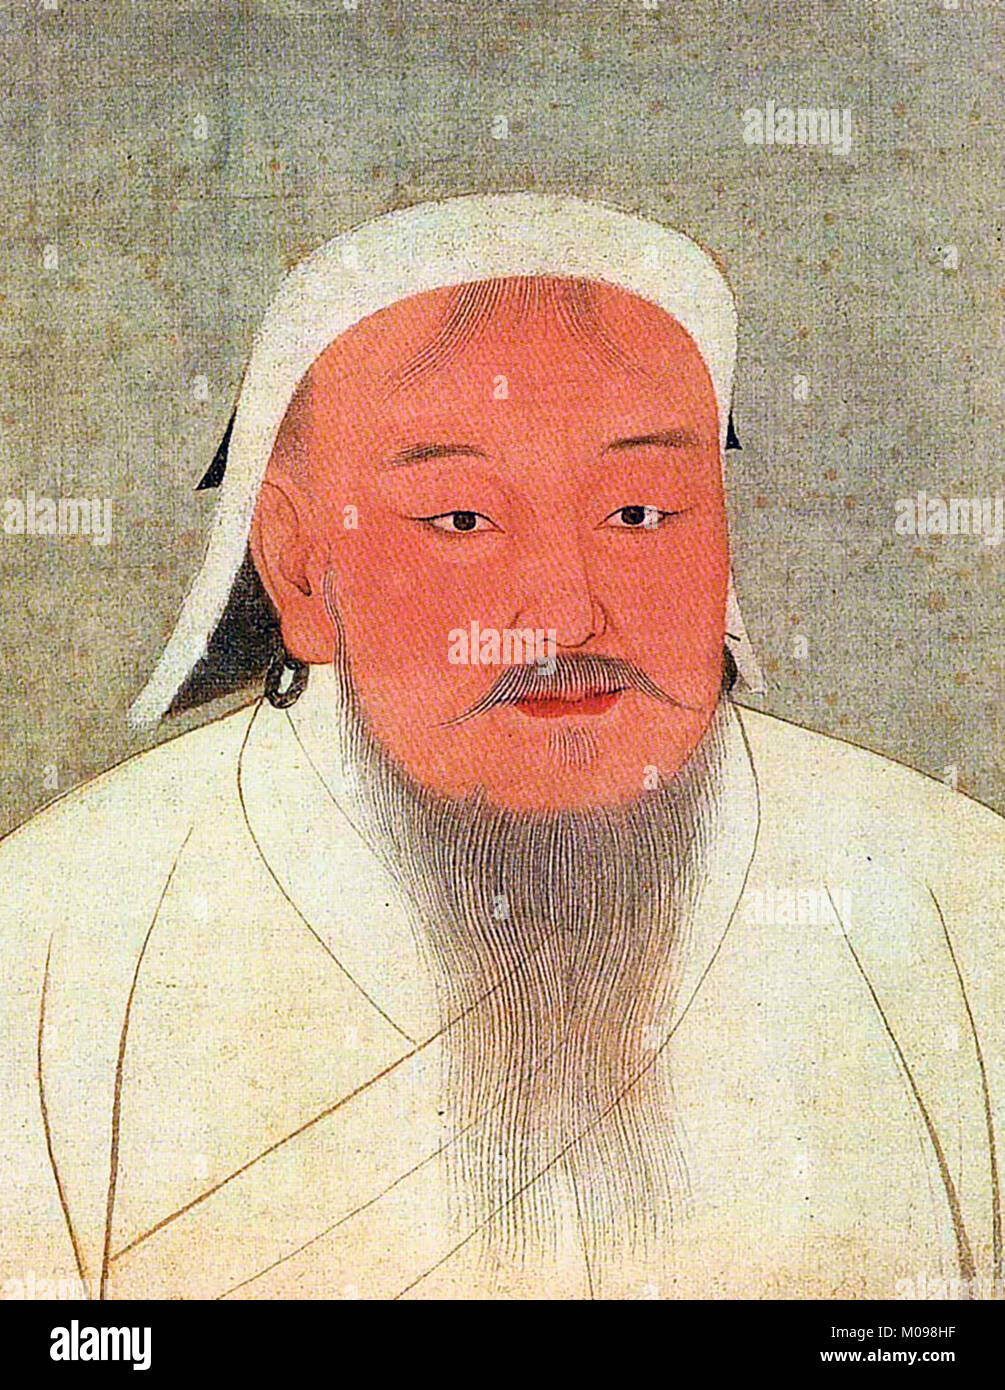 Genghis Khan (c.1162-1227), portrait of the founder of the Mongol Empire, paint and ink on silk, 14th century - Stock Image